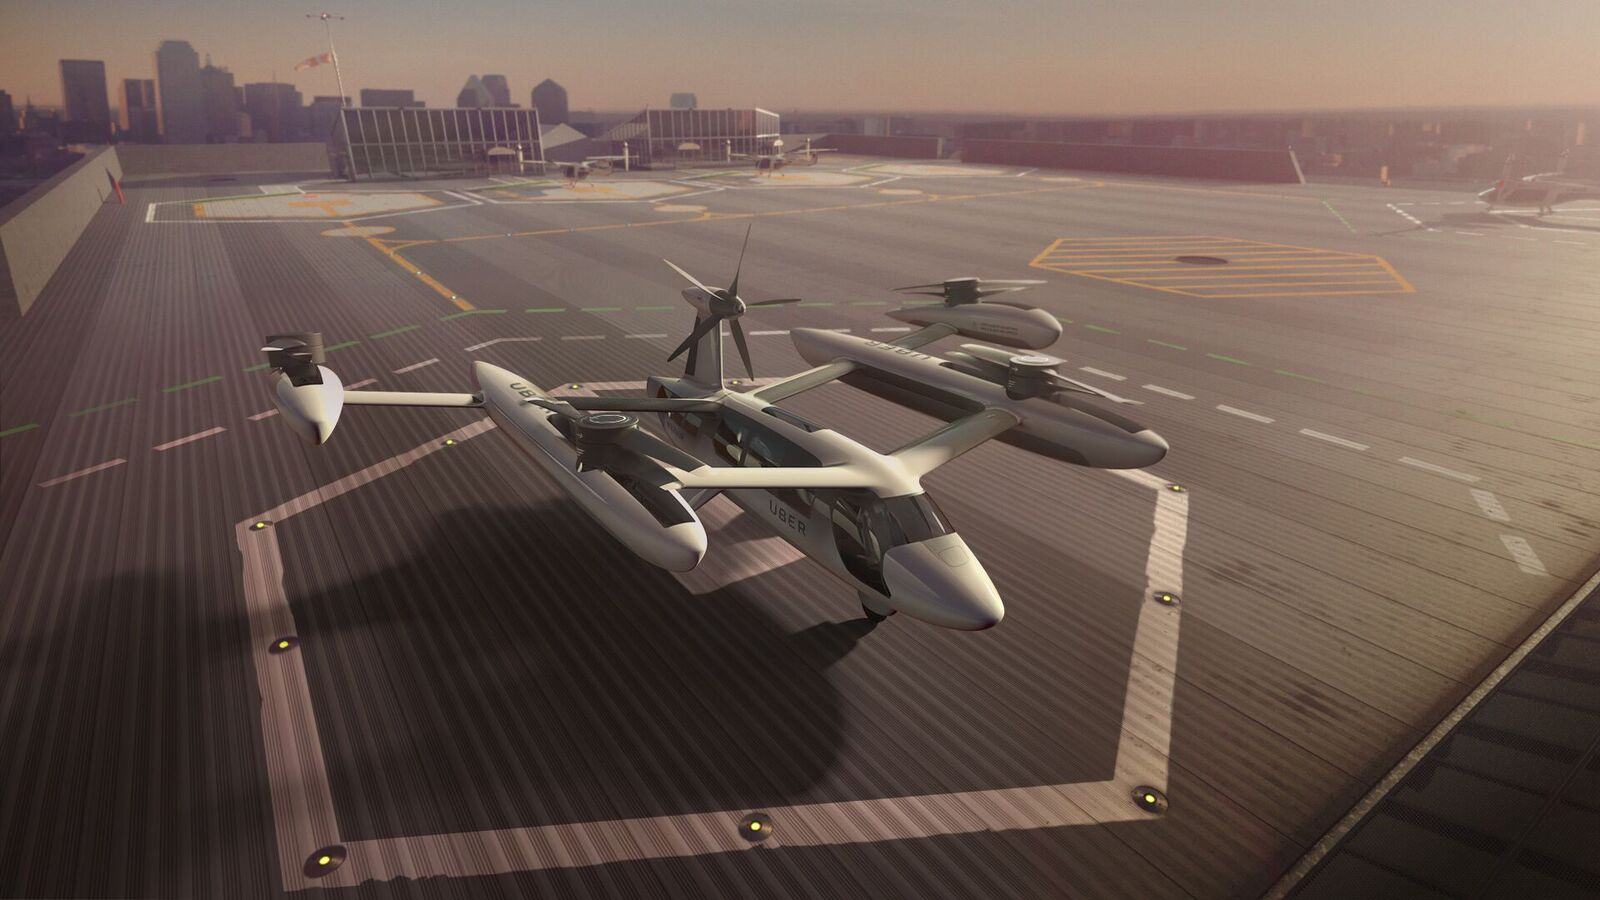 A potential design of a flying taxi from Uber